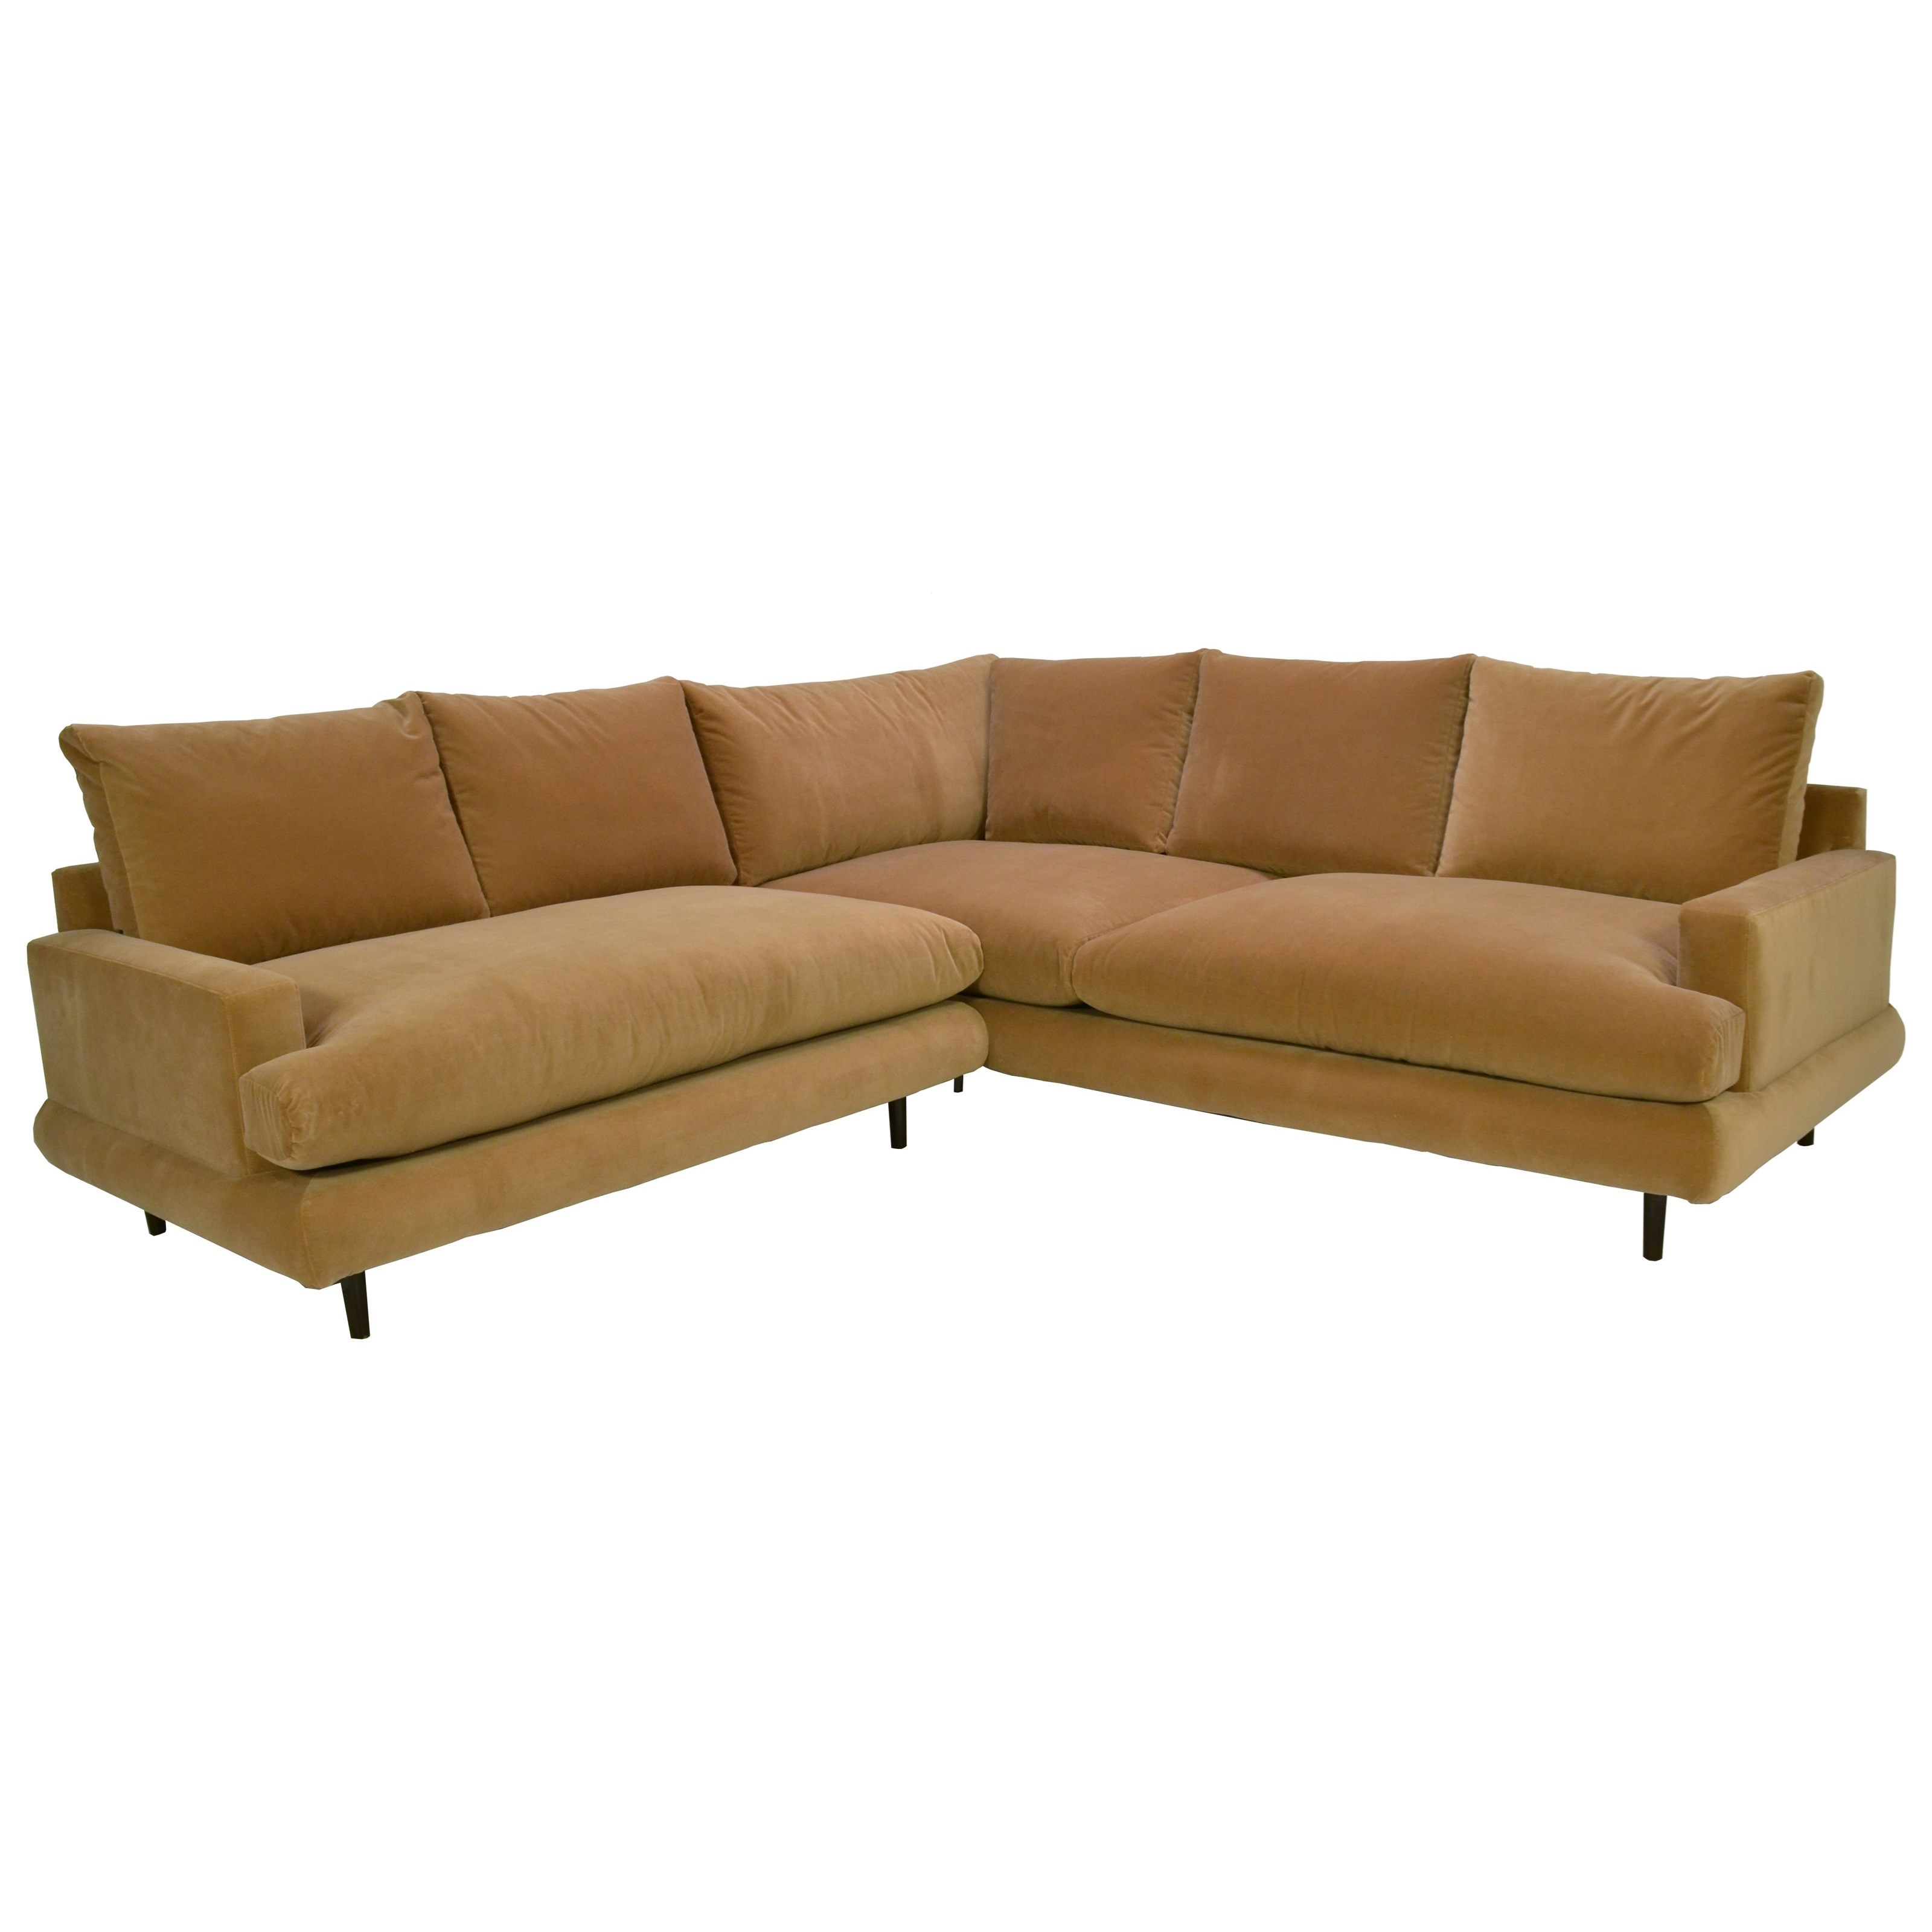 Somerset 2-Piece Sectional by Norwalk at Lagniappe Home Store